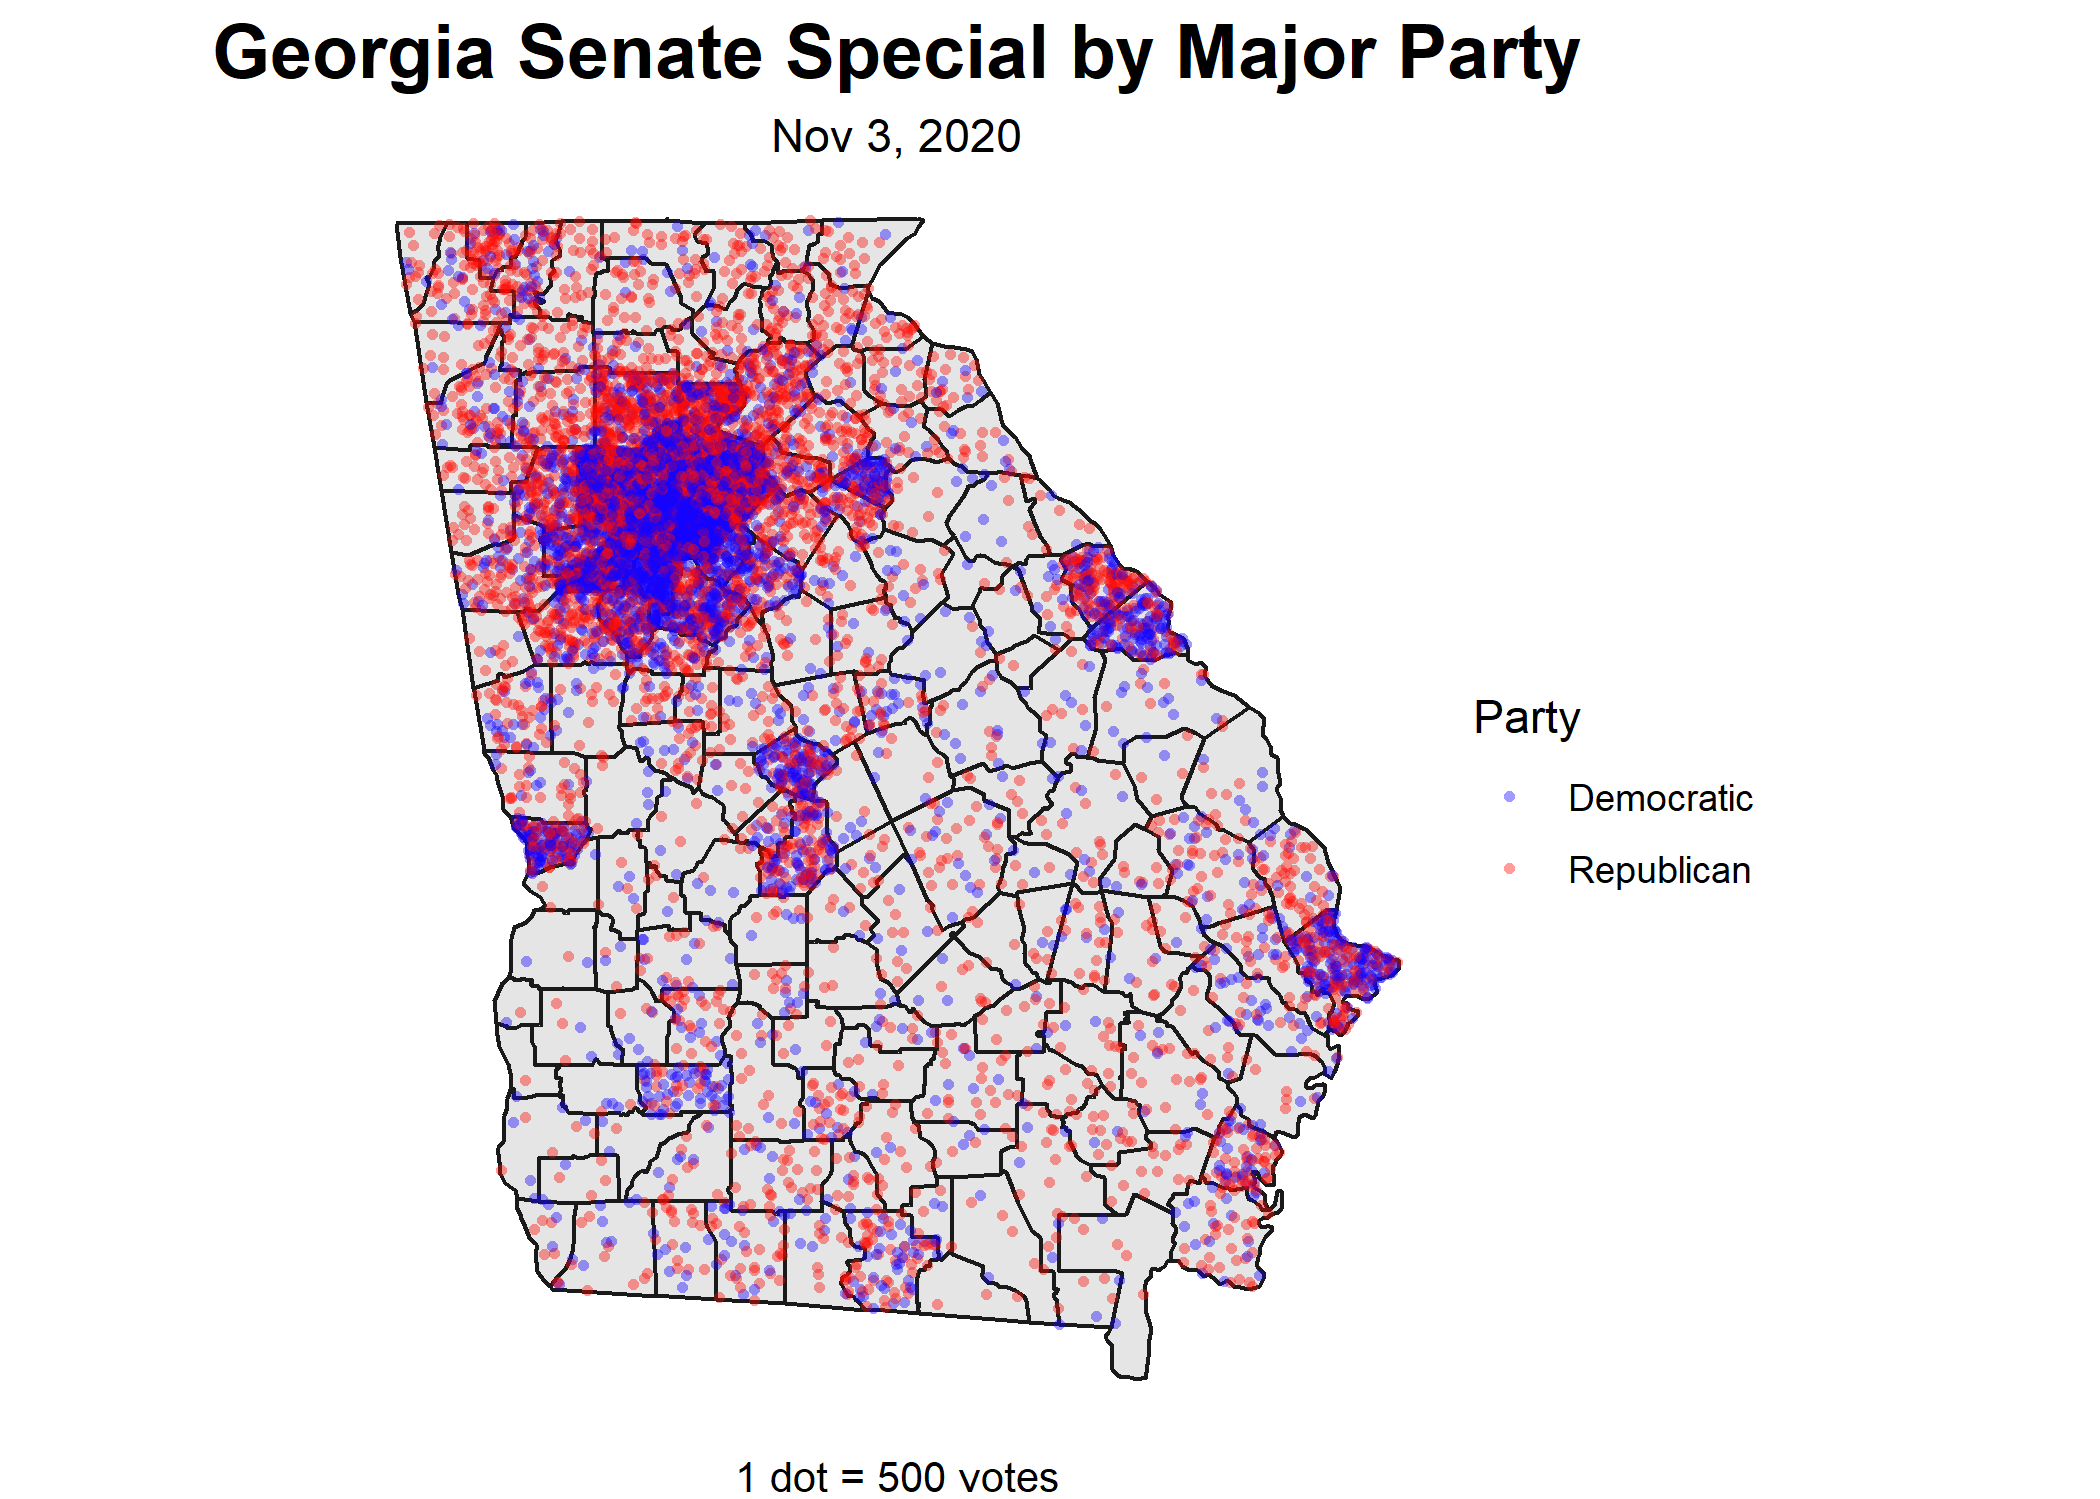 Georgia Senate Special Votes by Major Party. 1 dot = 500 votes